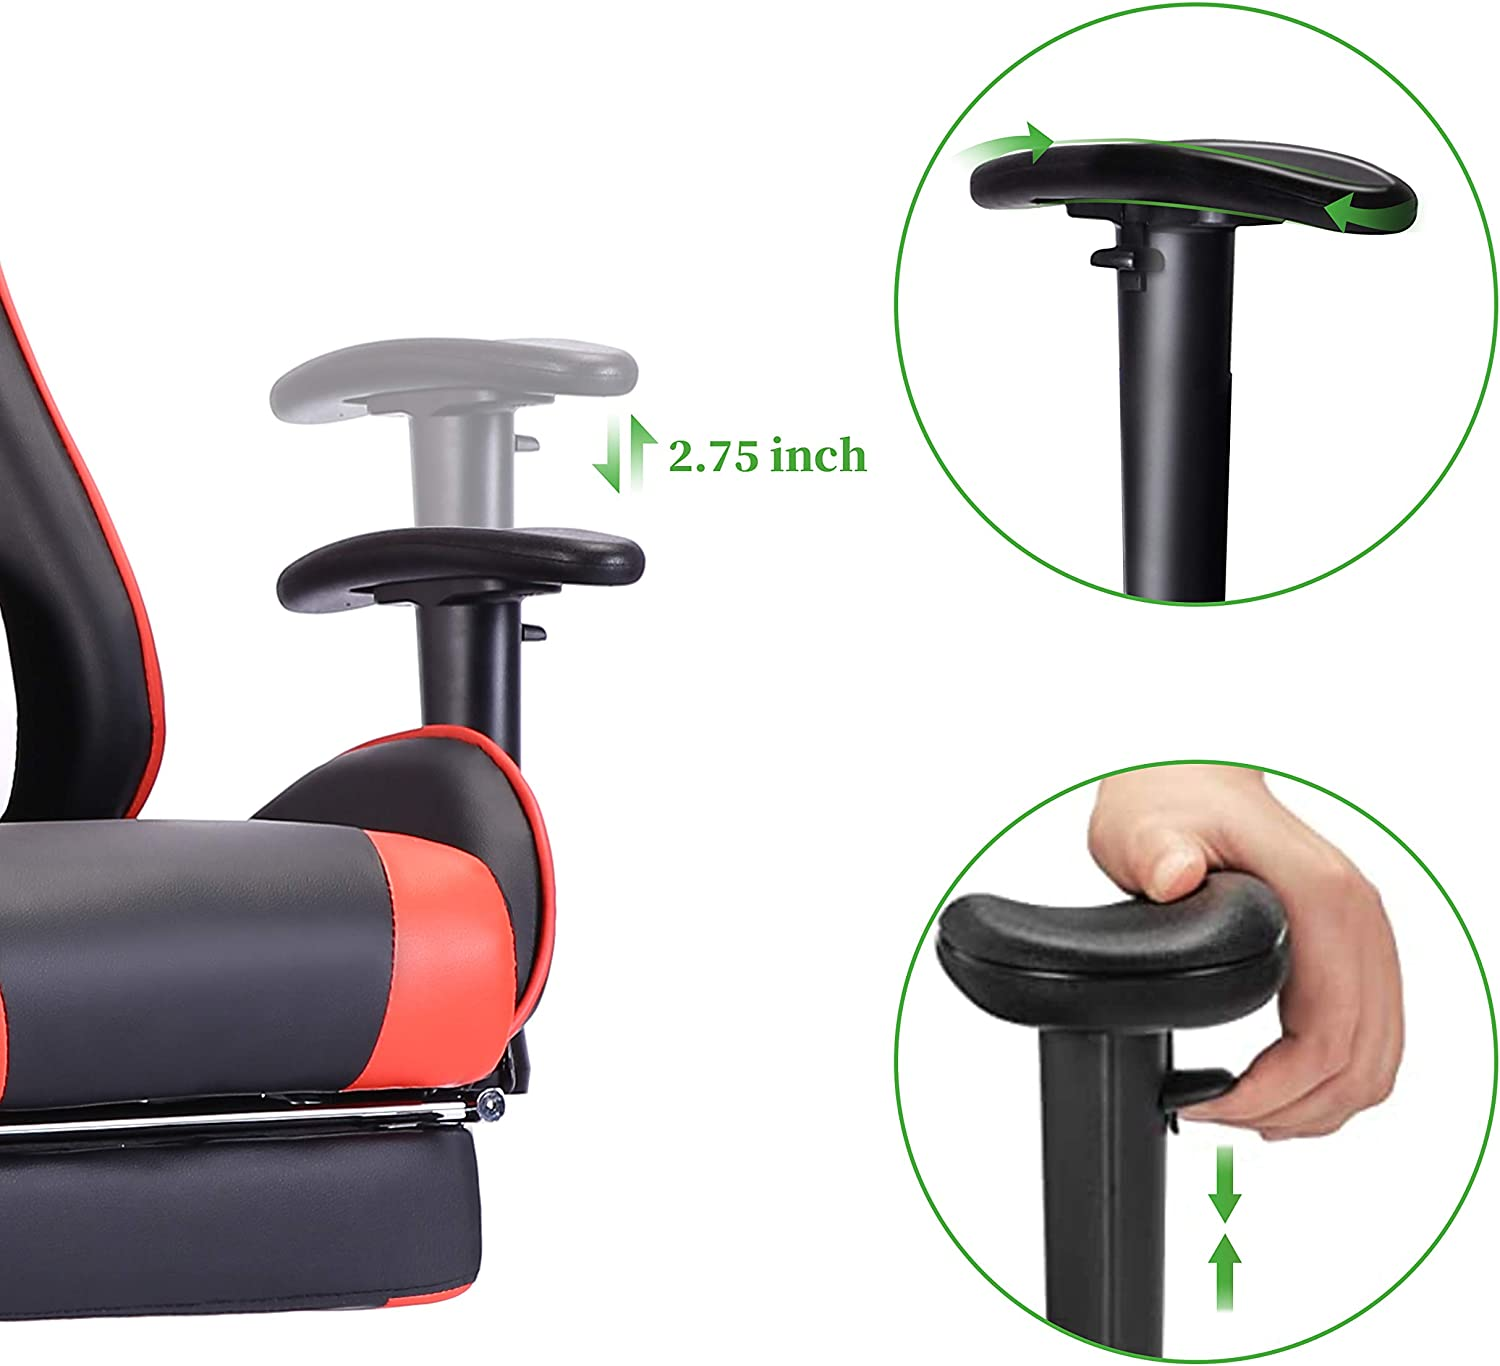 EDWELL Gaming Chair,Office Chair with Footrest,High Back Computer Chair,Adjustable Desk Chair with Headrest and Lumbar Support,PU Leather Executive Chair for Adults Women Men,Ergonomic Design